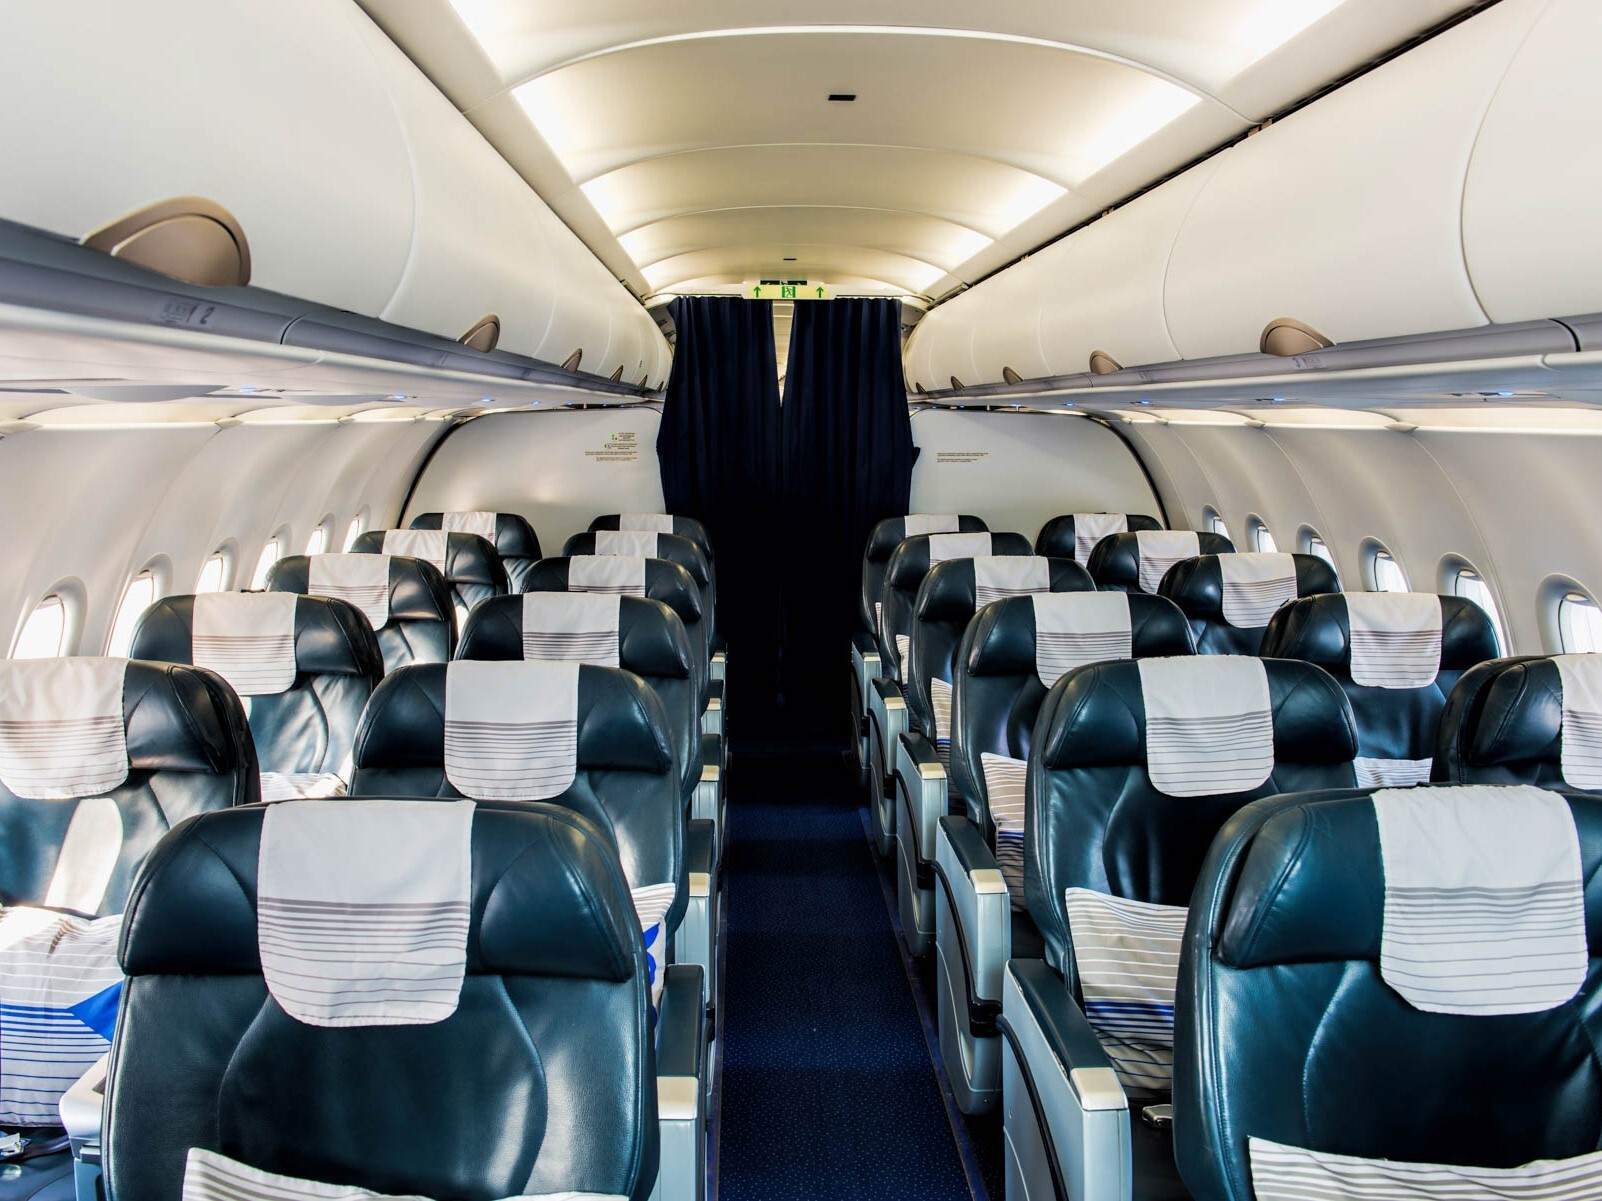 Airplane_Interior_shutterstock_545220661.jpg